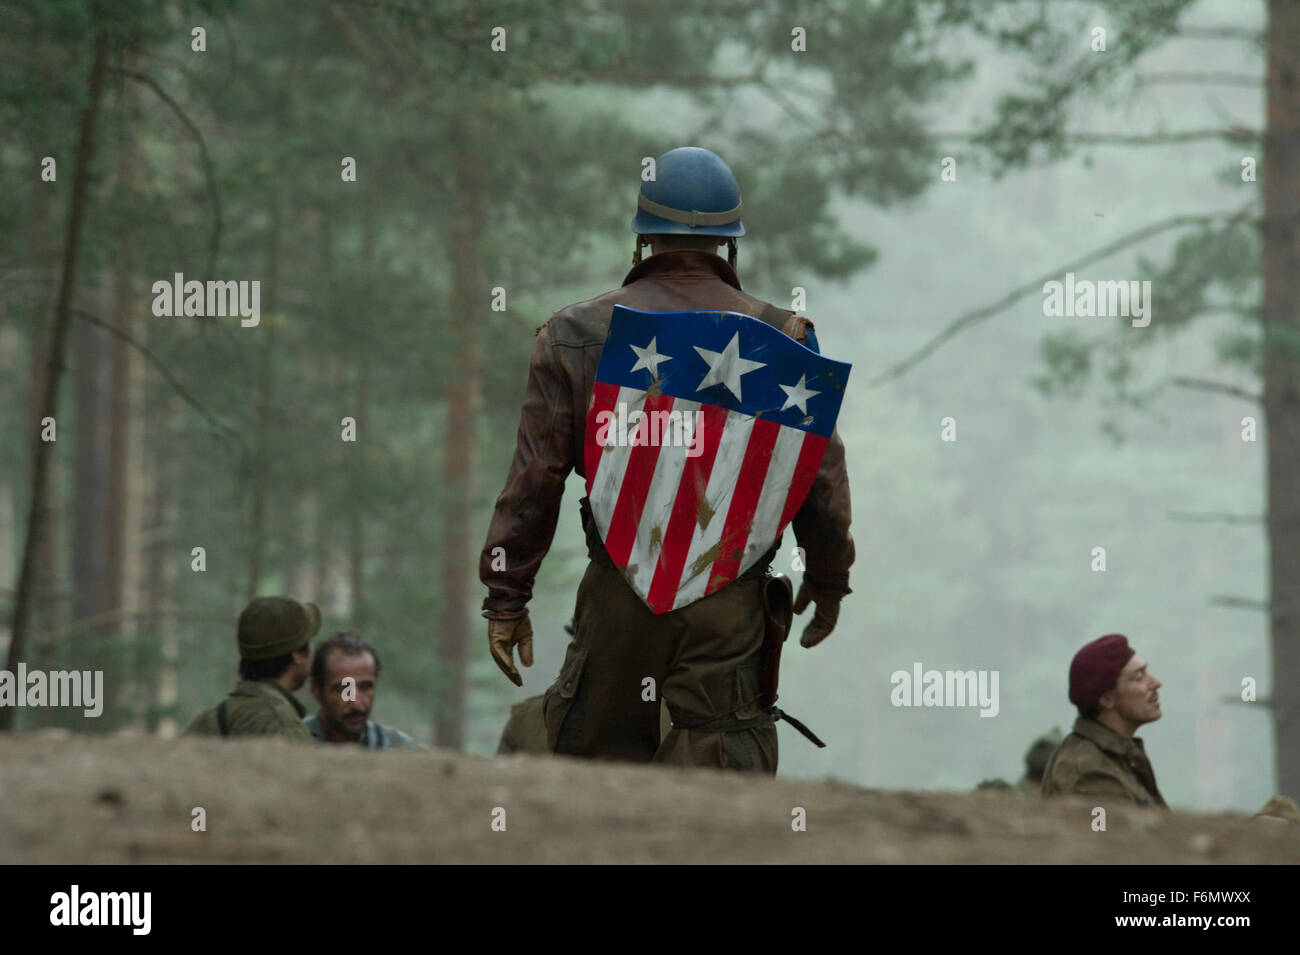 RELEASE DATE: July 22, 2011 MOVIE TITLE: Captain America